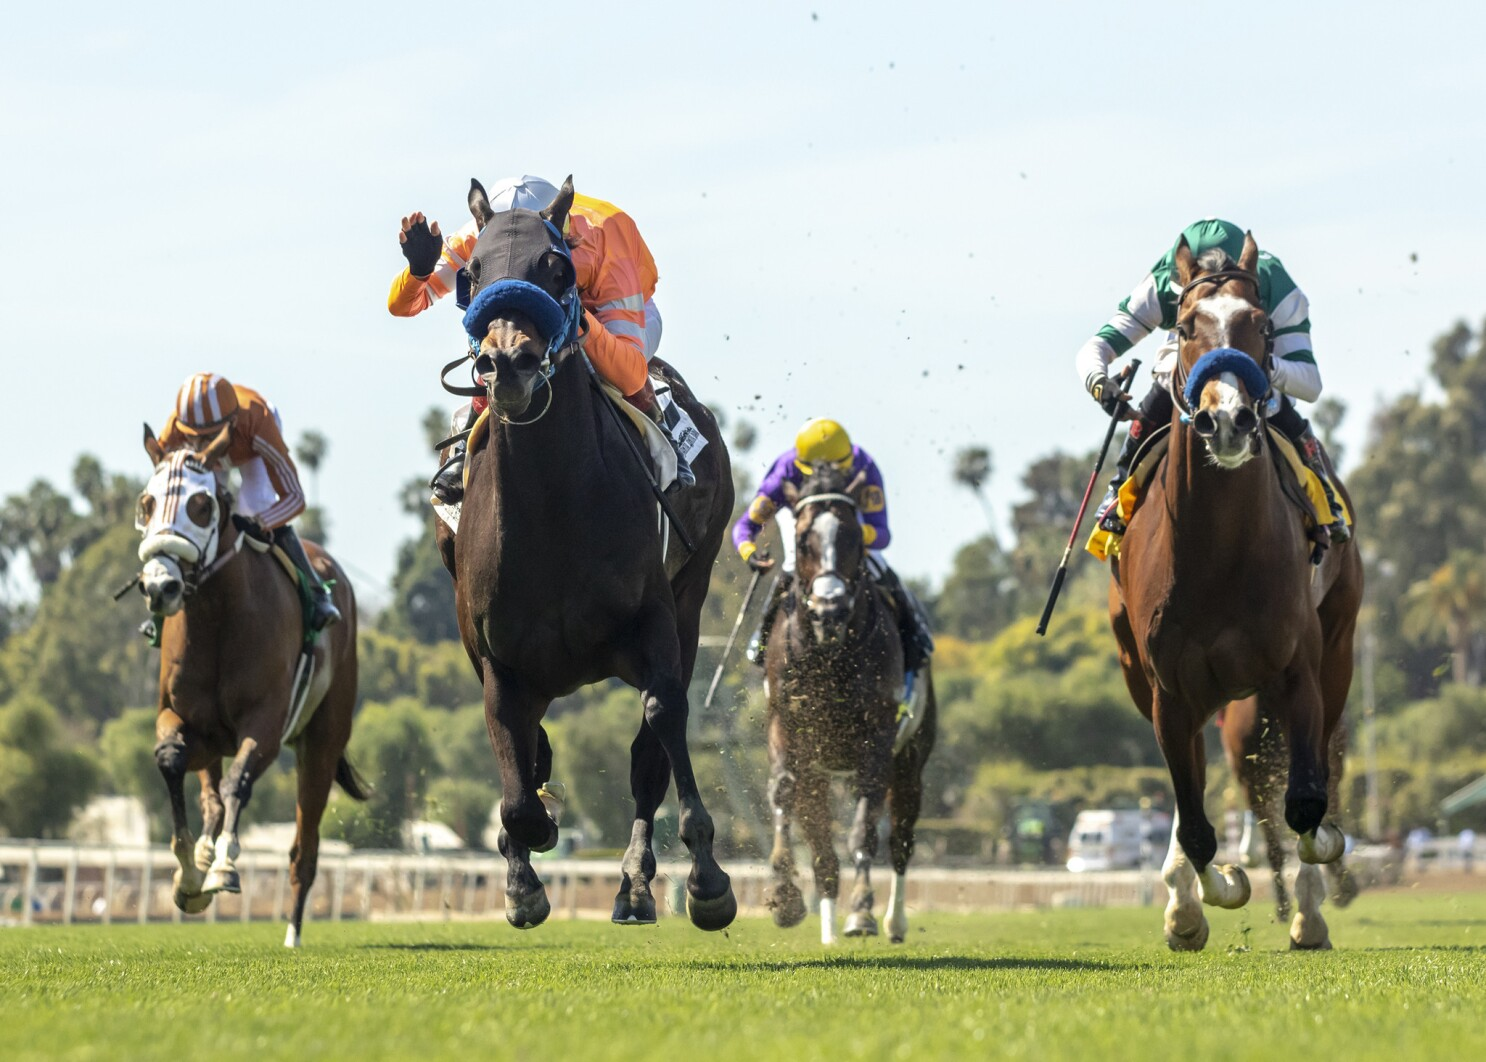 f03b49fccc0d 23rd horse dies at Santa Anita after racing accident - The San Diego  Union-Tribune